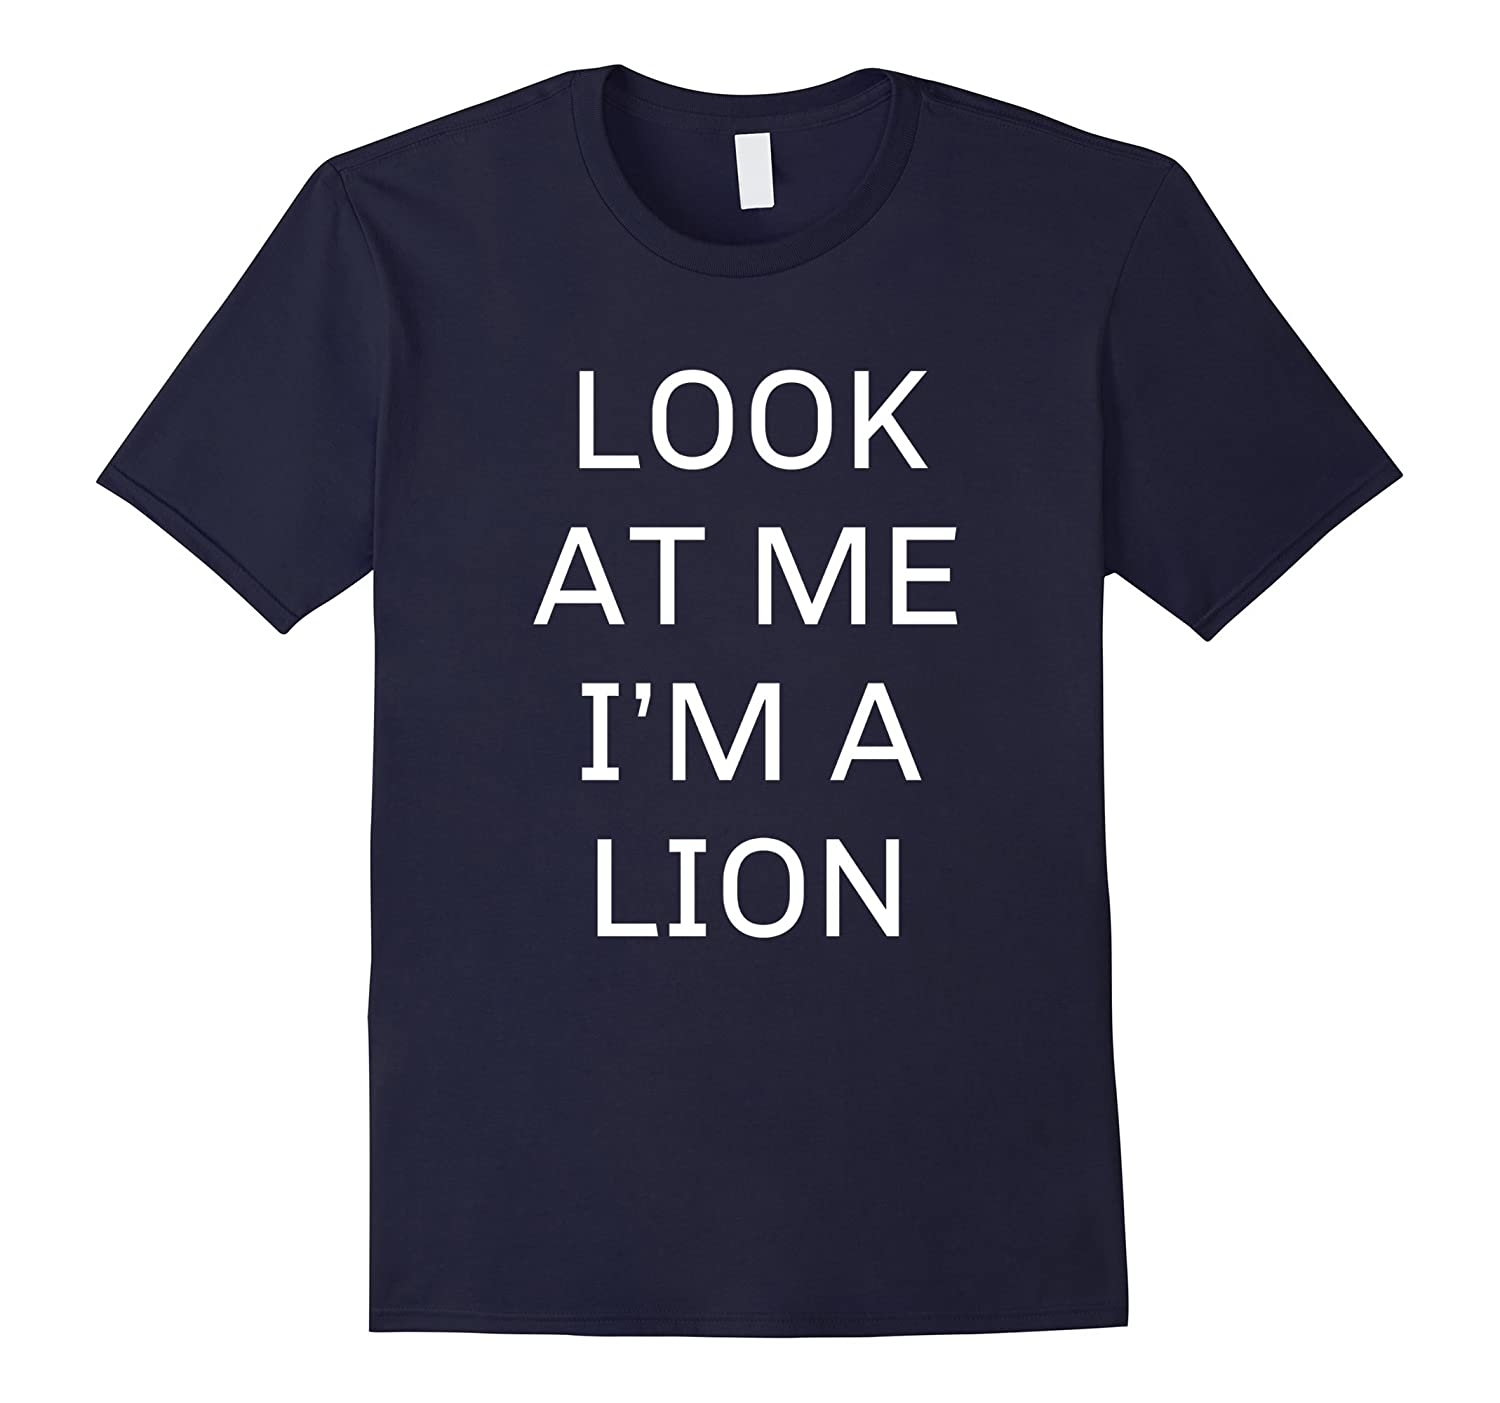 Look At Me I'm a Lion Halloween Costume Shirt Women Men Kids-FL